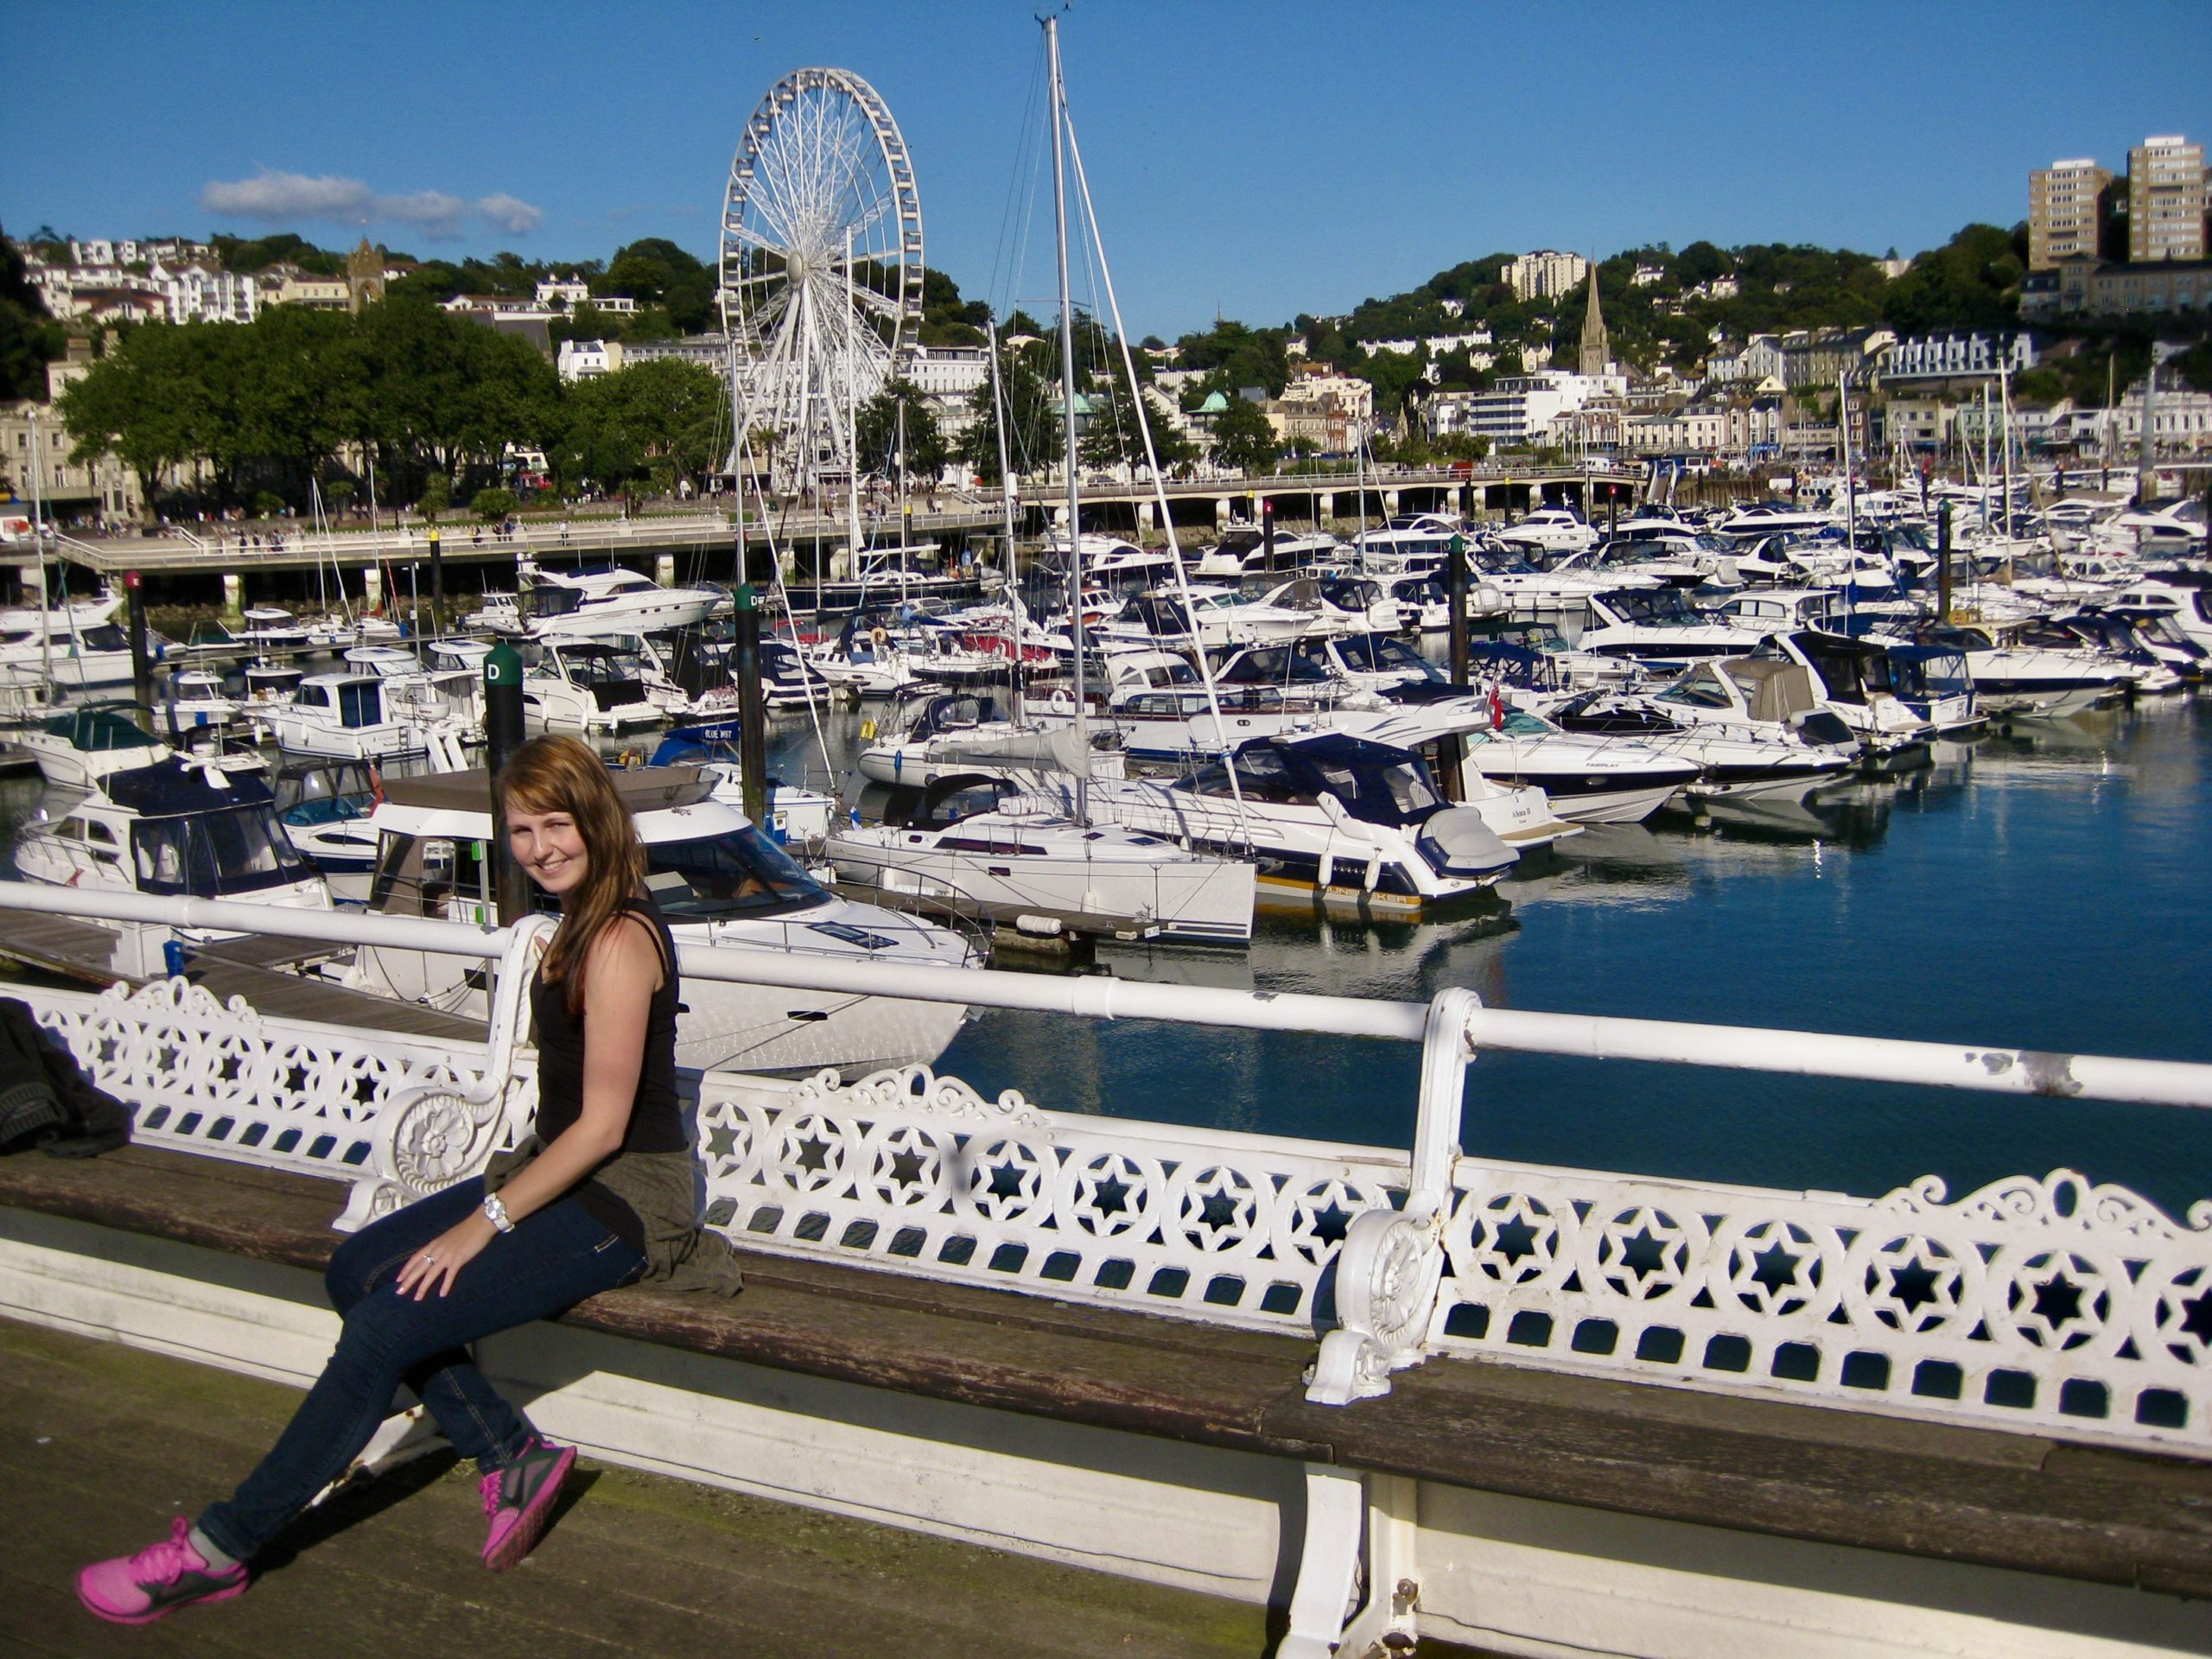 Tea and scones at the English Riviera